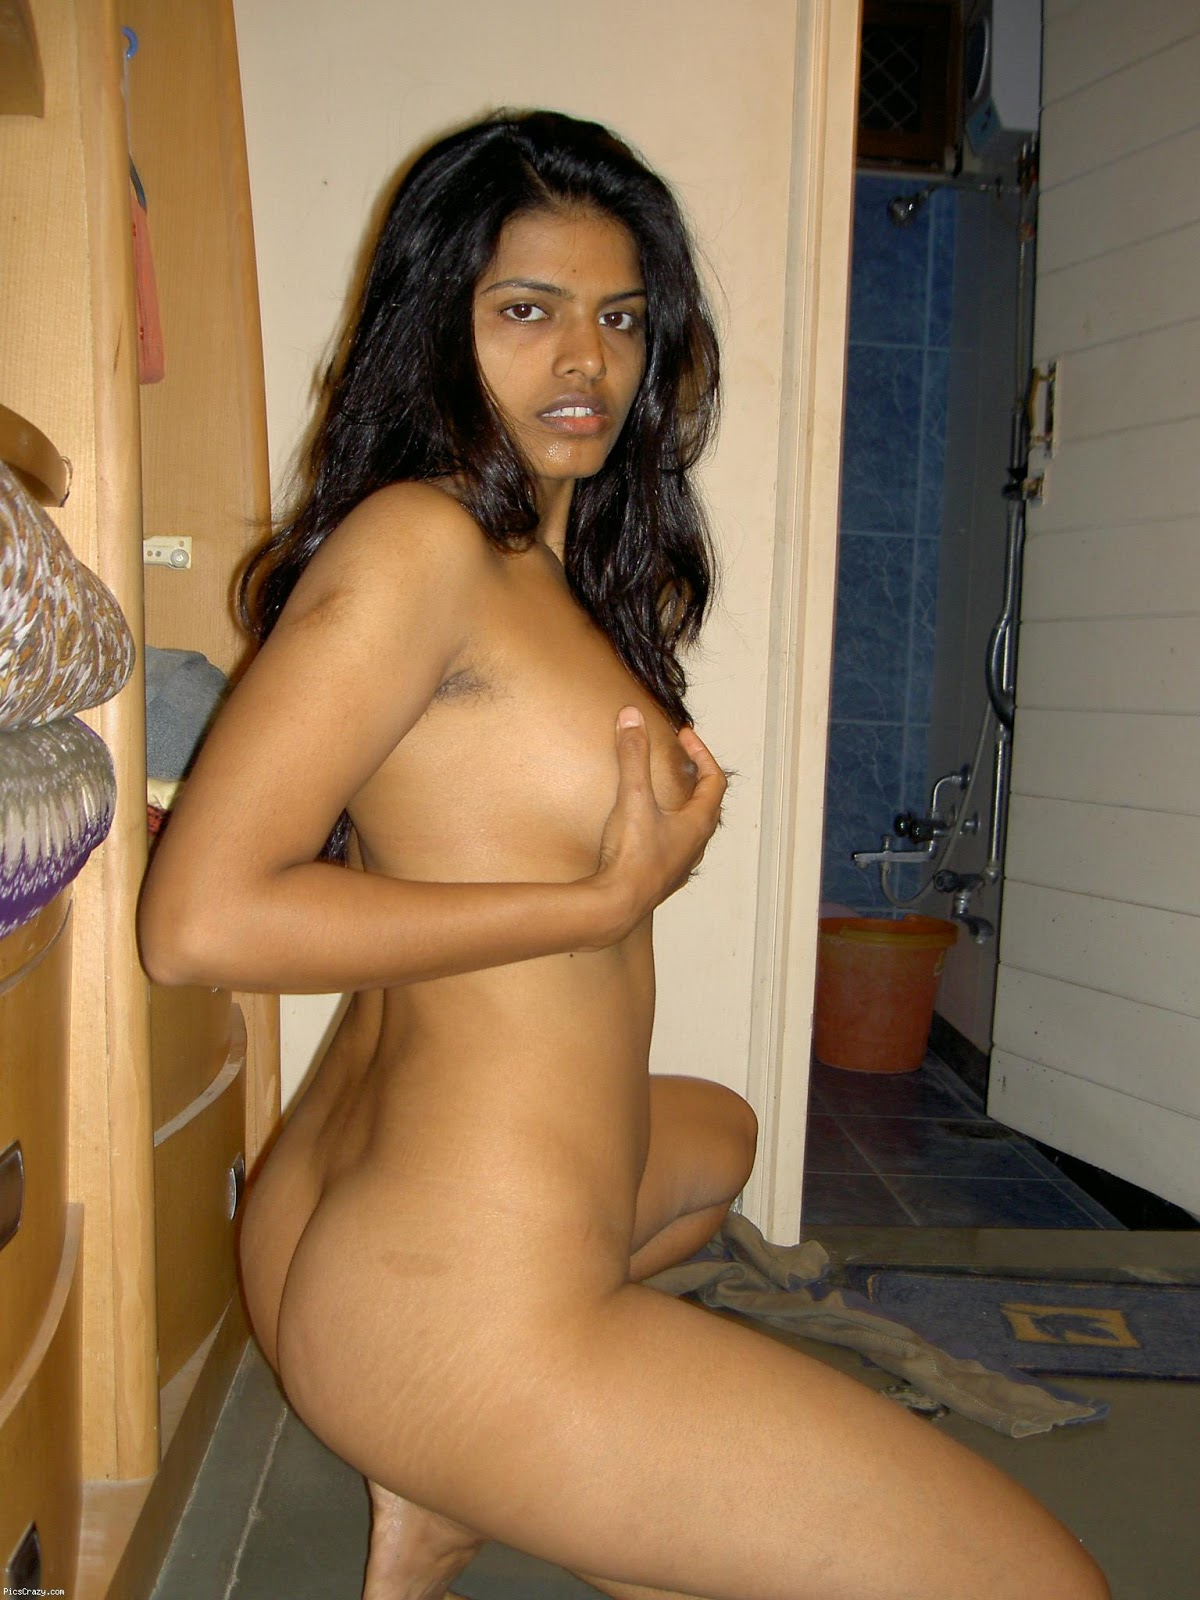 hot indian nude naked women images